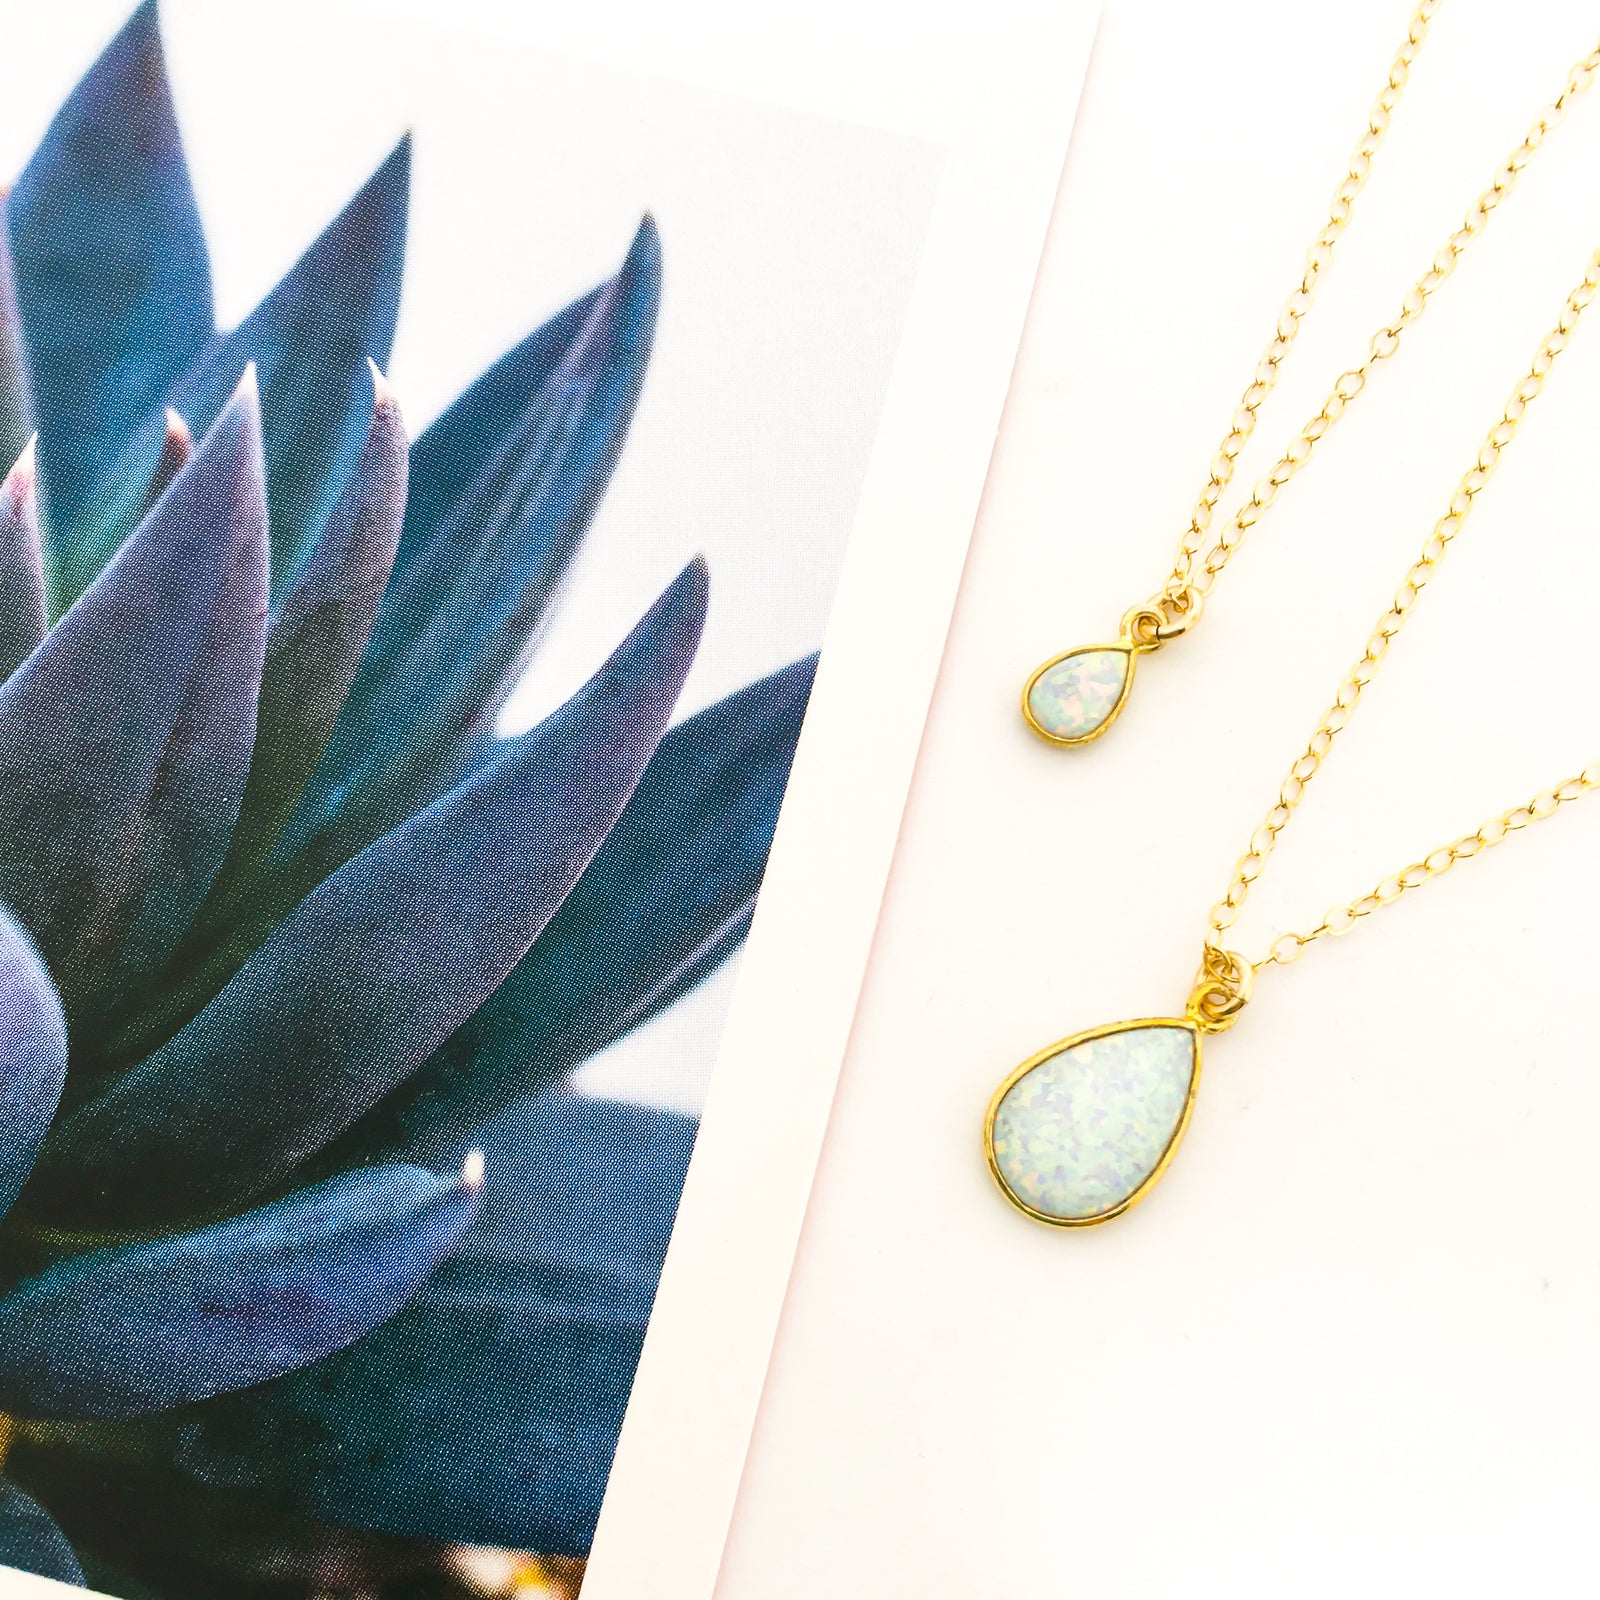 TEAR DROP LAB OPAL STONE NECKLACES | 14K GOLD-FILLED | SIZE OPTIONS